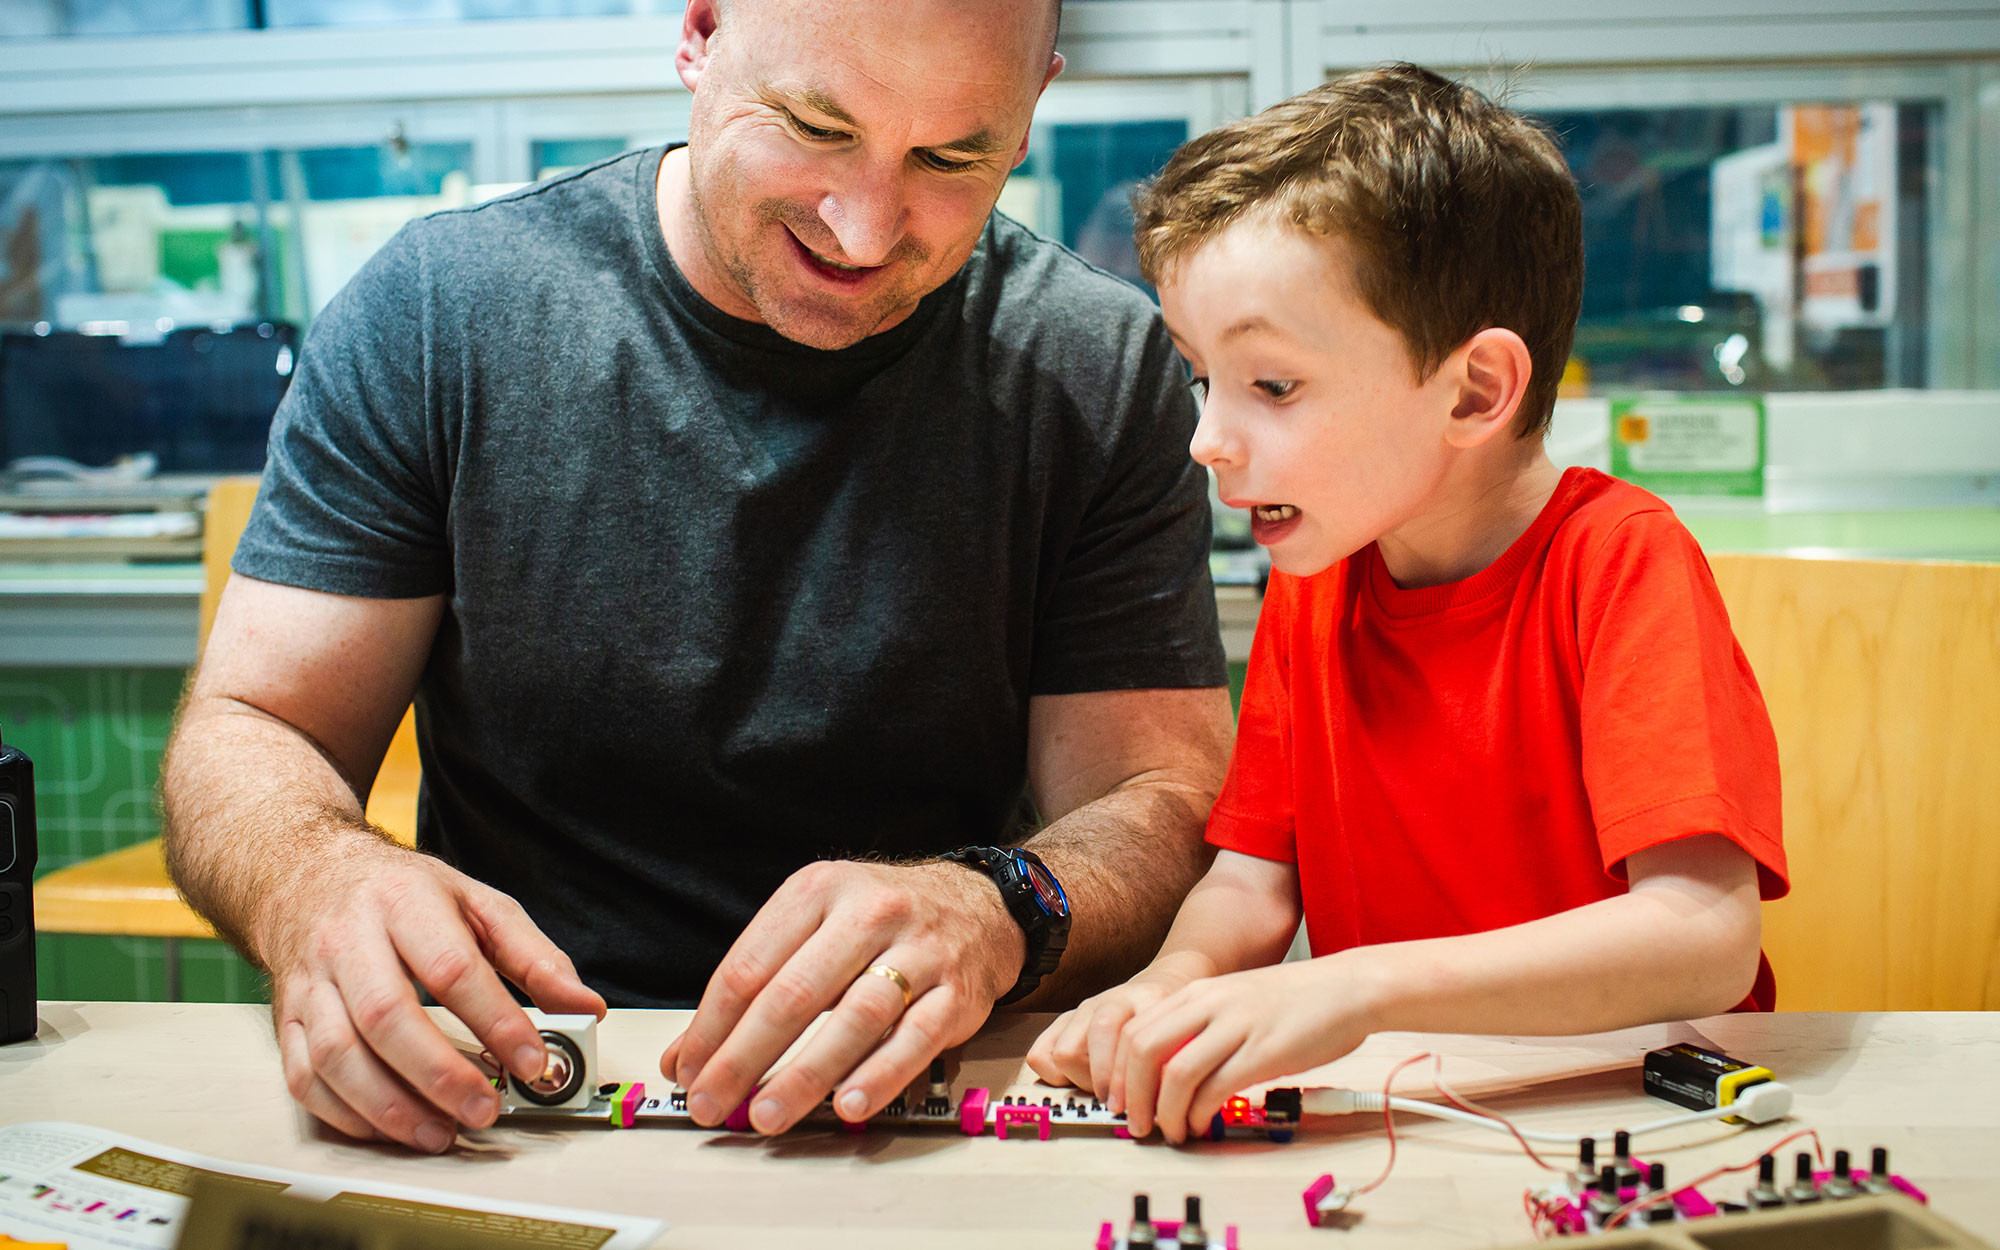 Father and son tinkering at home with electrical circuits